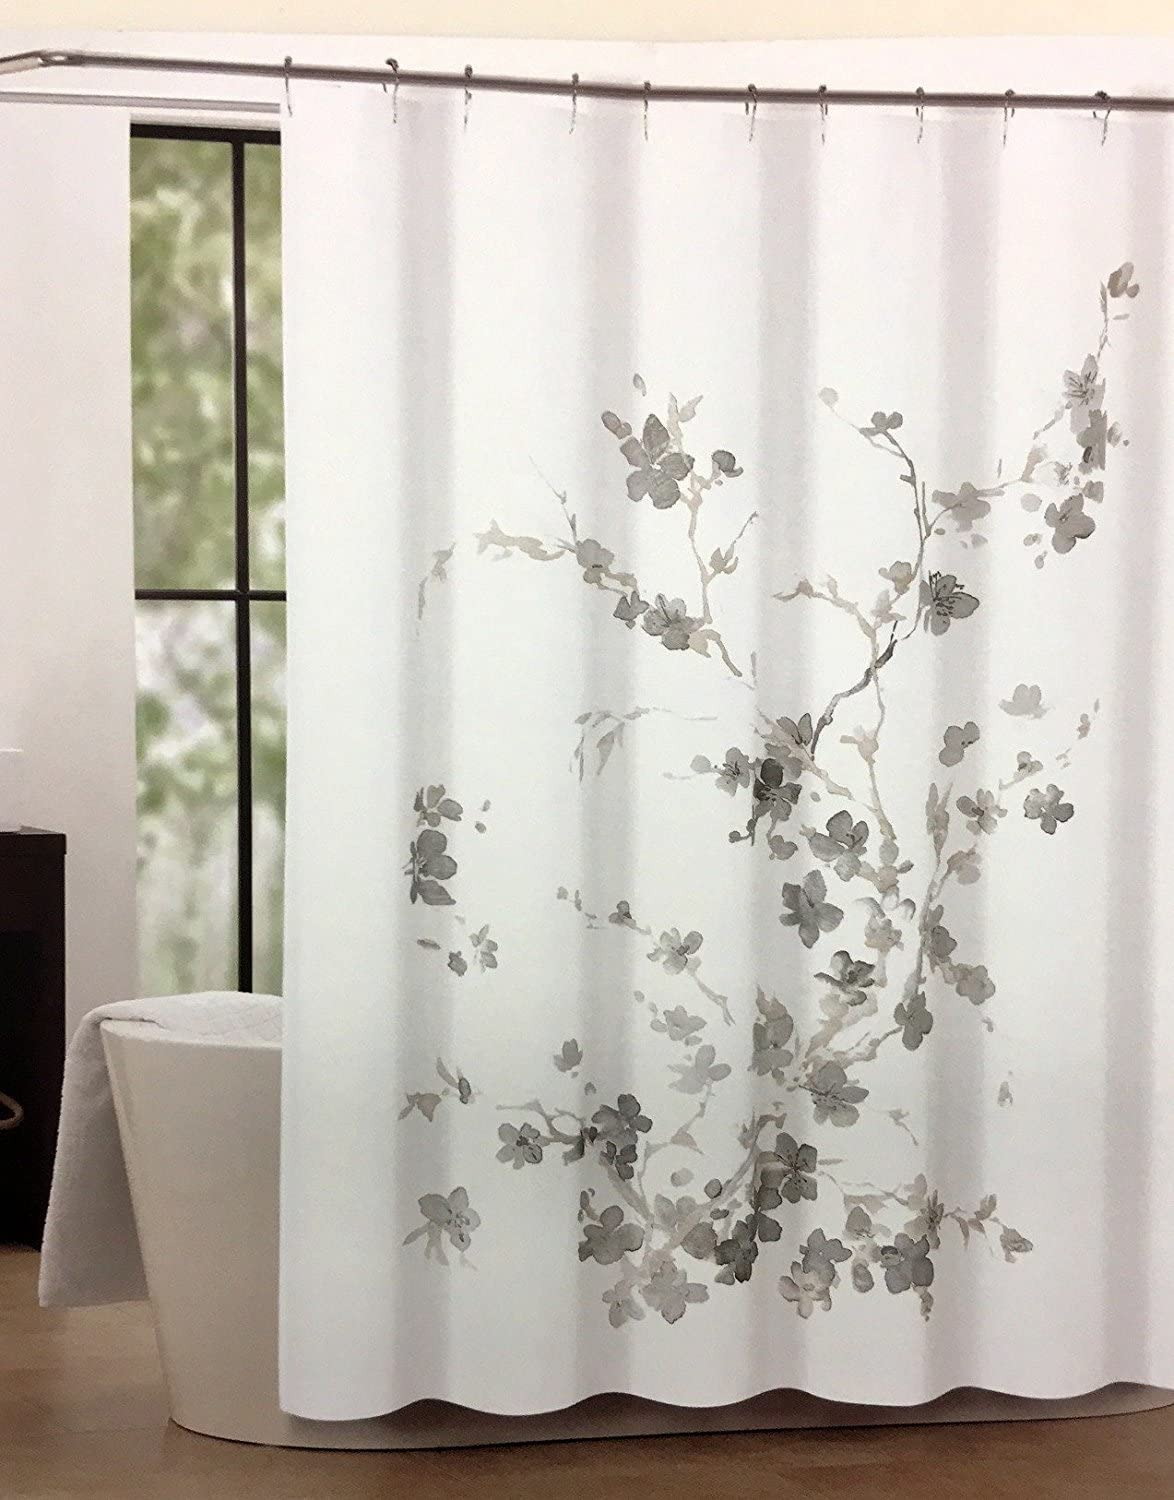 Tahari Luxury Cotton Blend Shower Curtain Printemps Gray Floral Branches